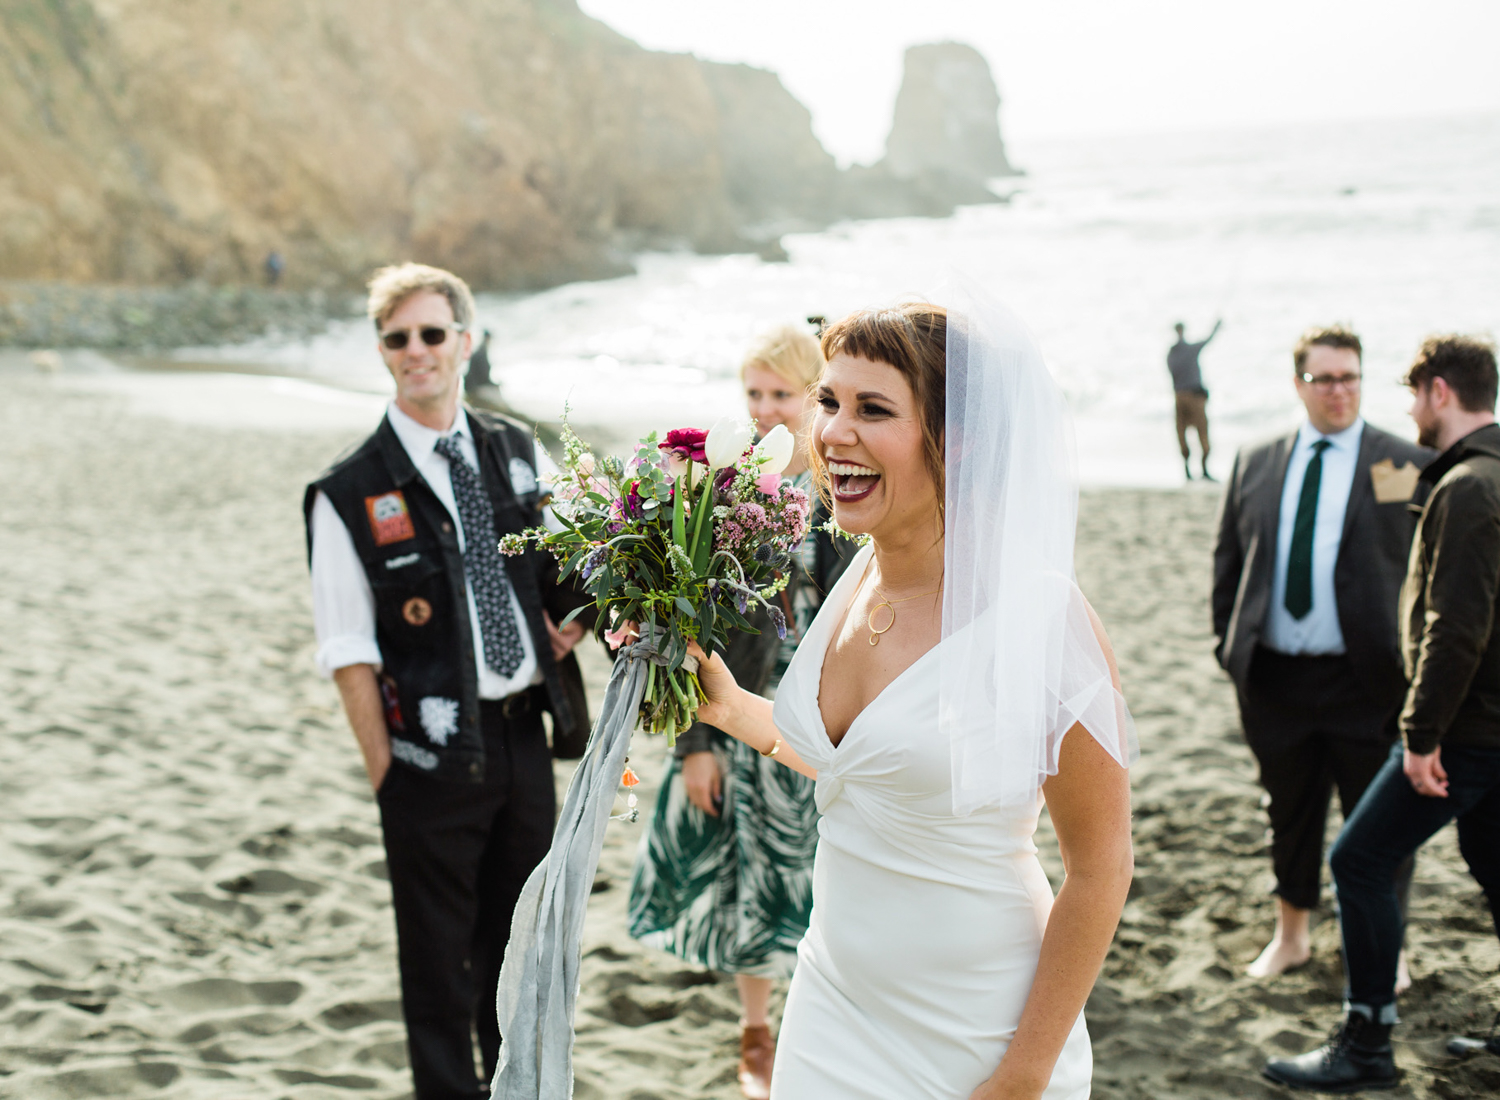 Pacifica_Beach_Surfer_Wedding_116.jpg